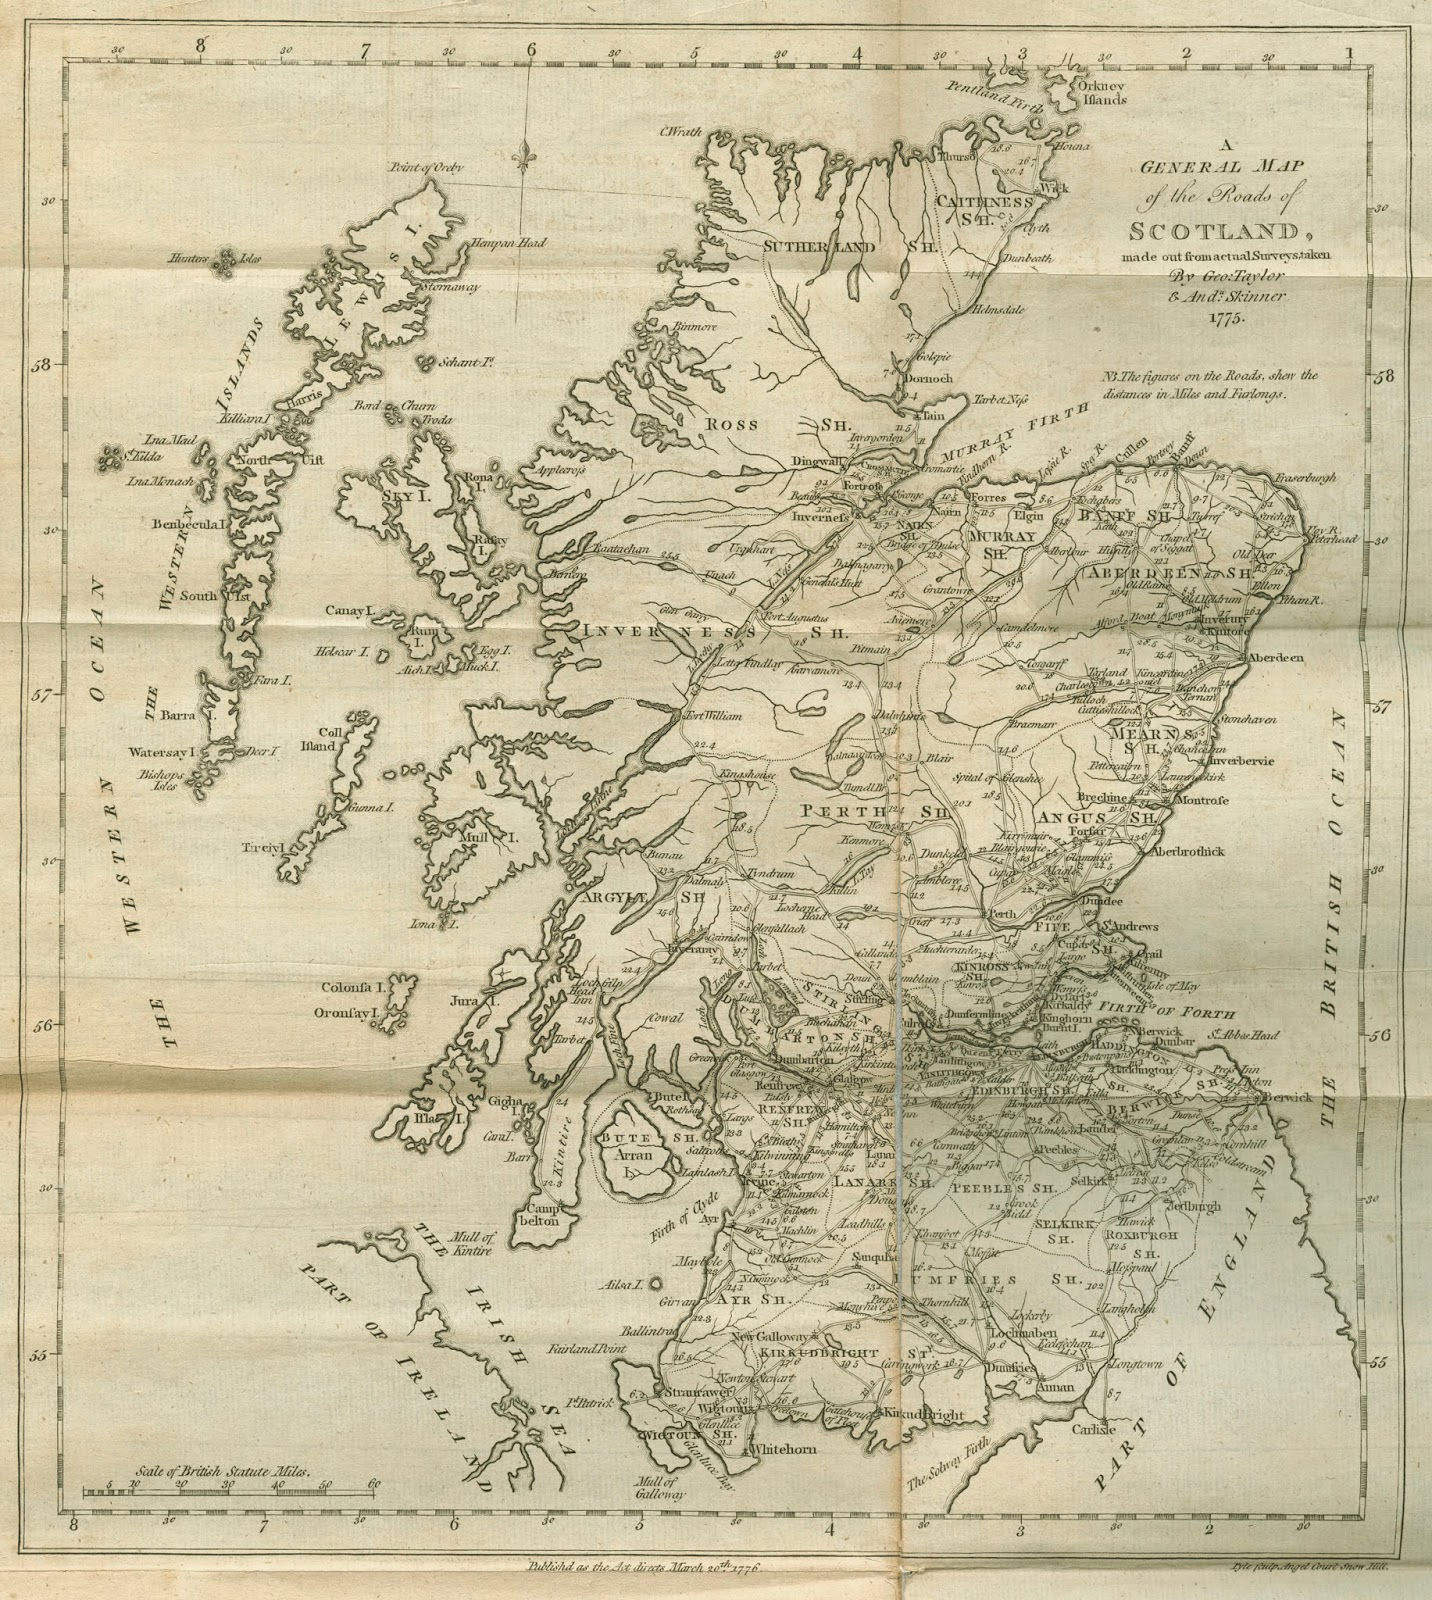 to see our copy of taylor and skinner s survey of the roads of north britain or scotland walk into rauner and ask to see rare g1826 p2 t3 1776